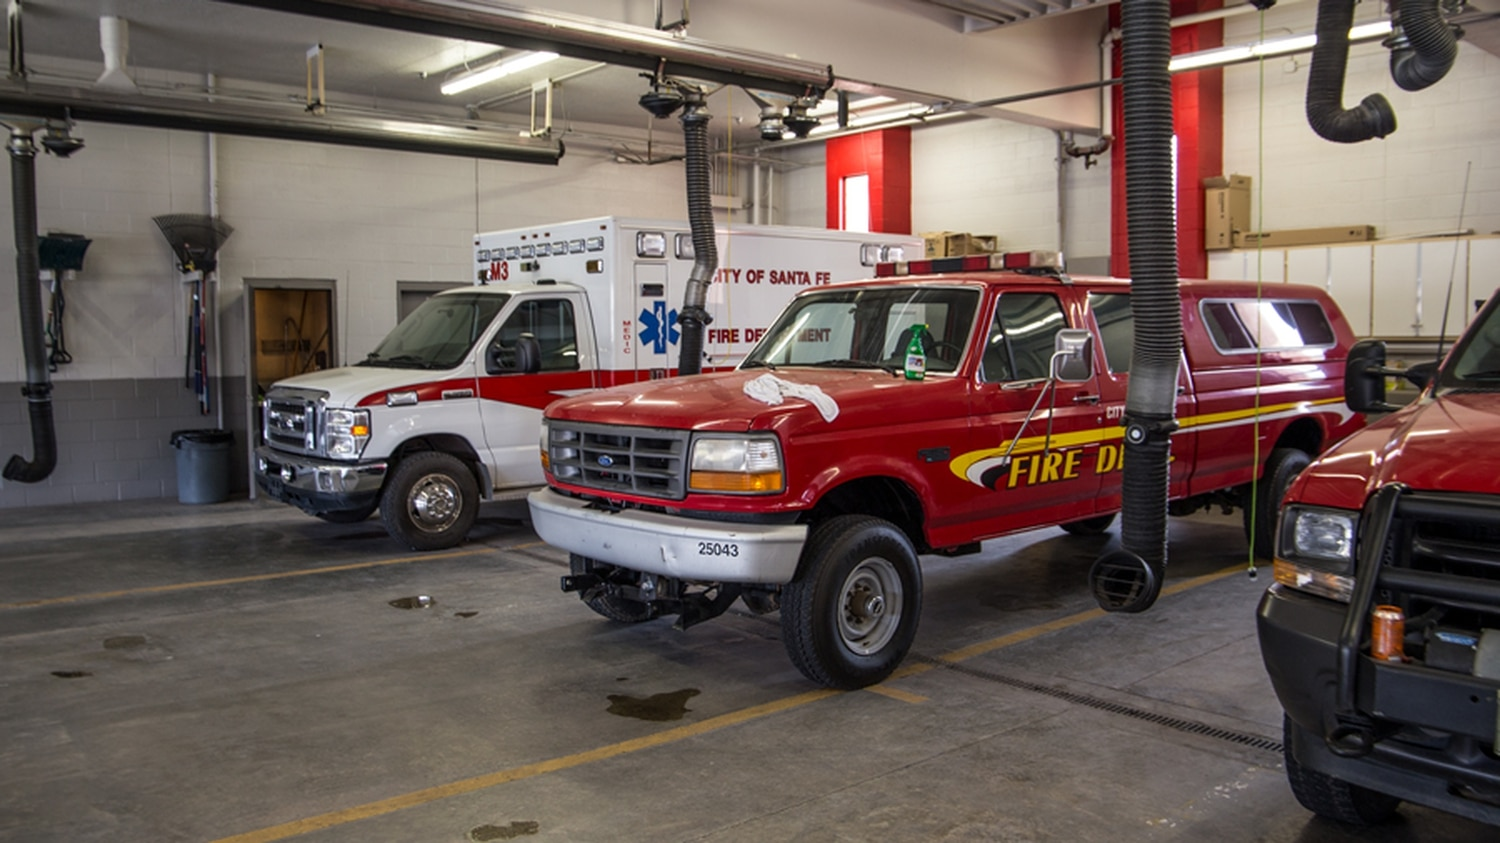 Every first response vehicle in the city will receive a new onboard radio, along with new portable radios for every fire fighter and police officer in Santa Fe